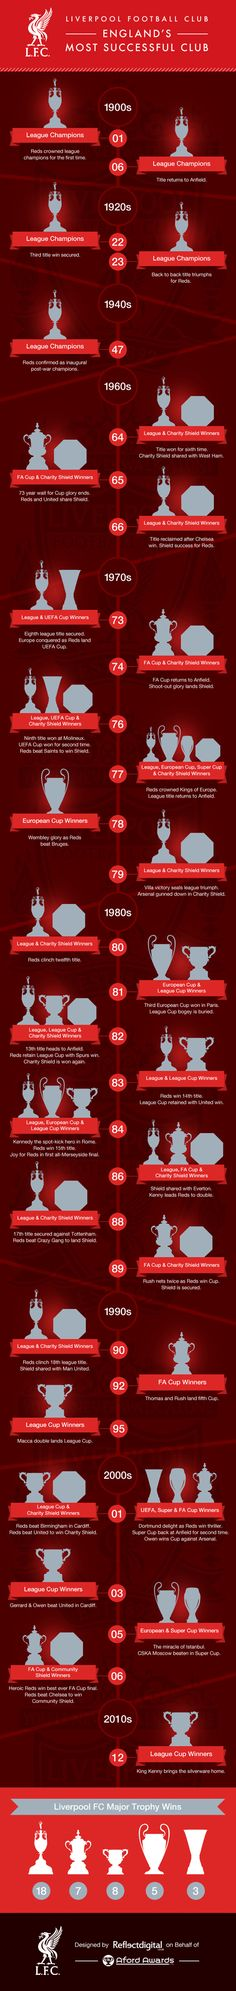 History of #LiverpoolFootballClub #Trophies #lfc